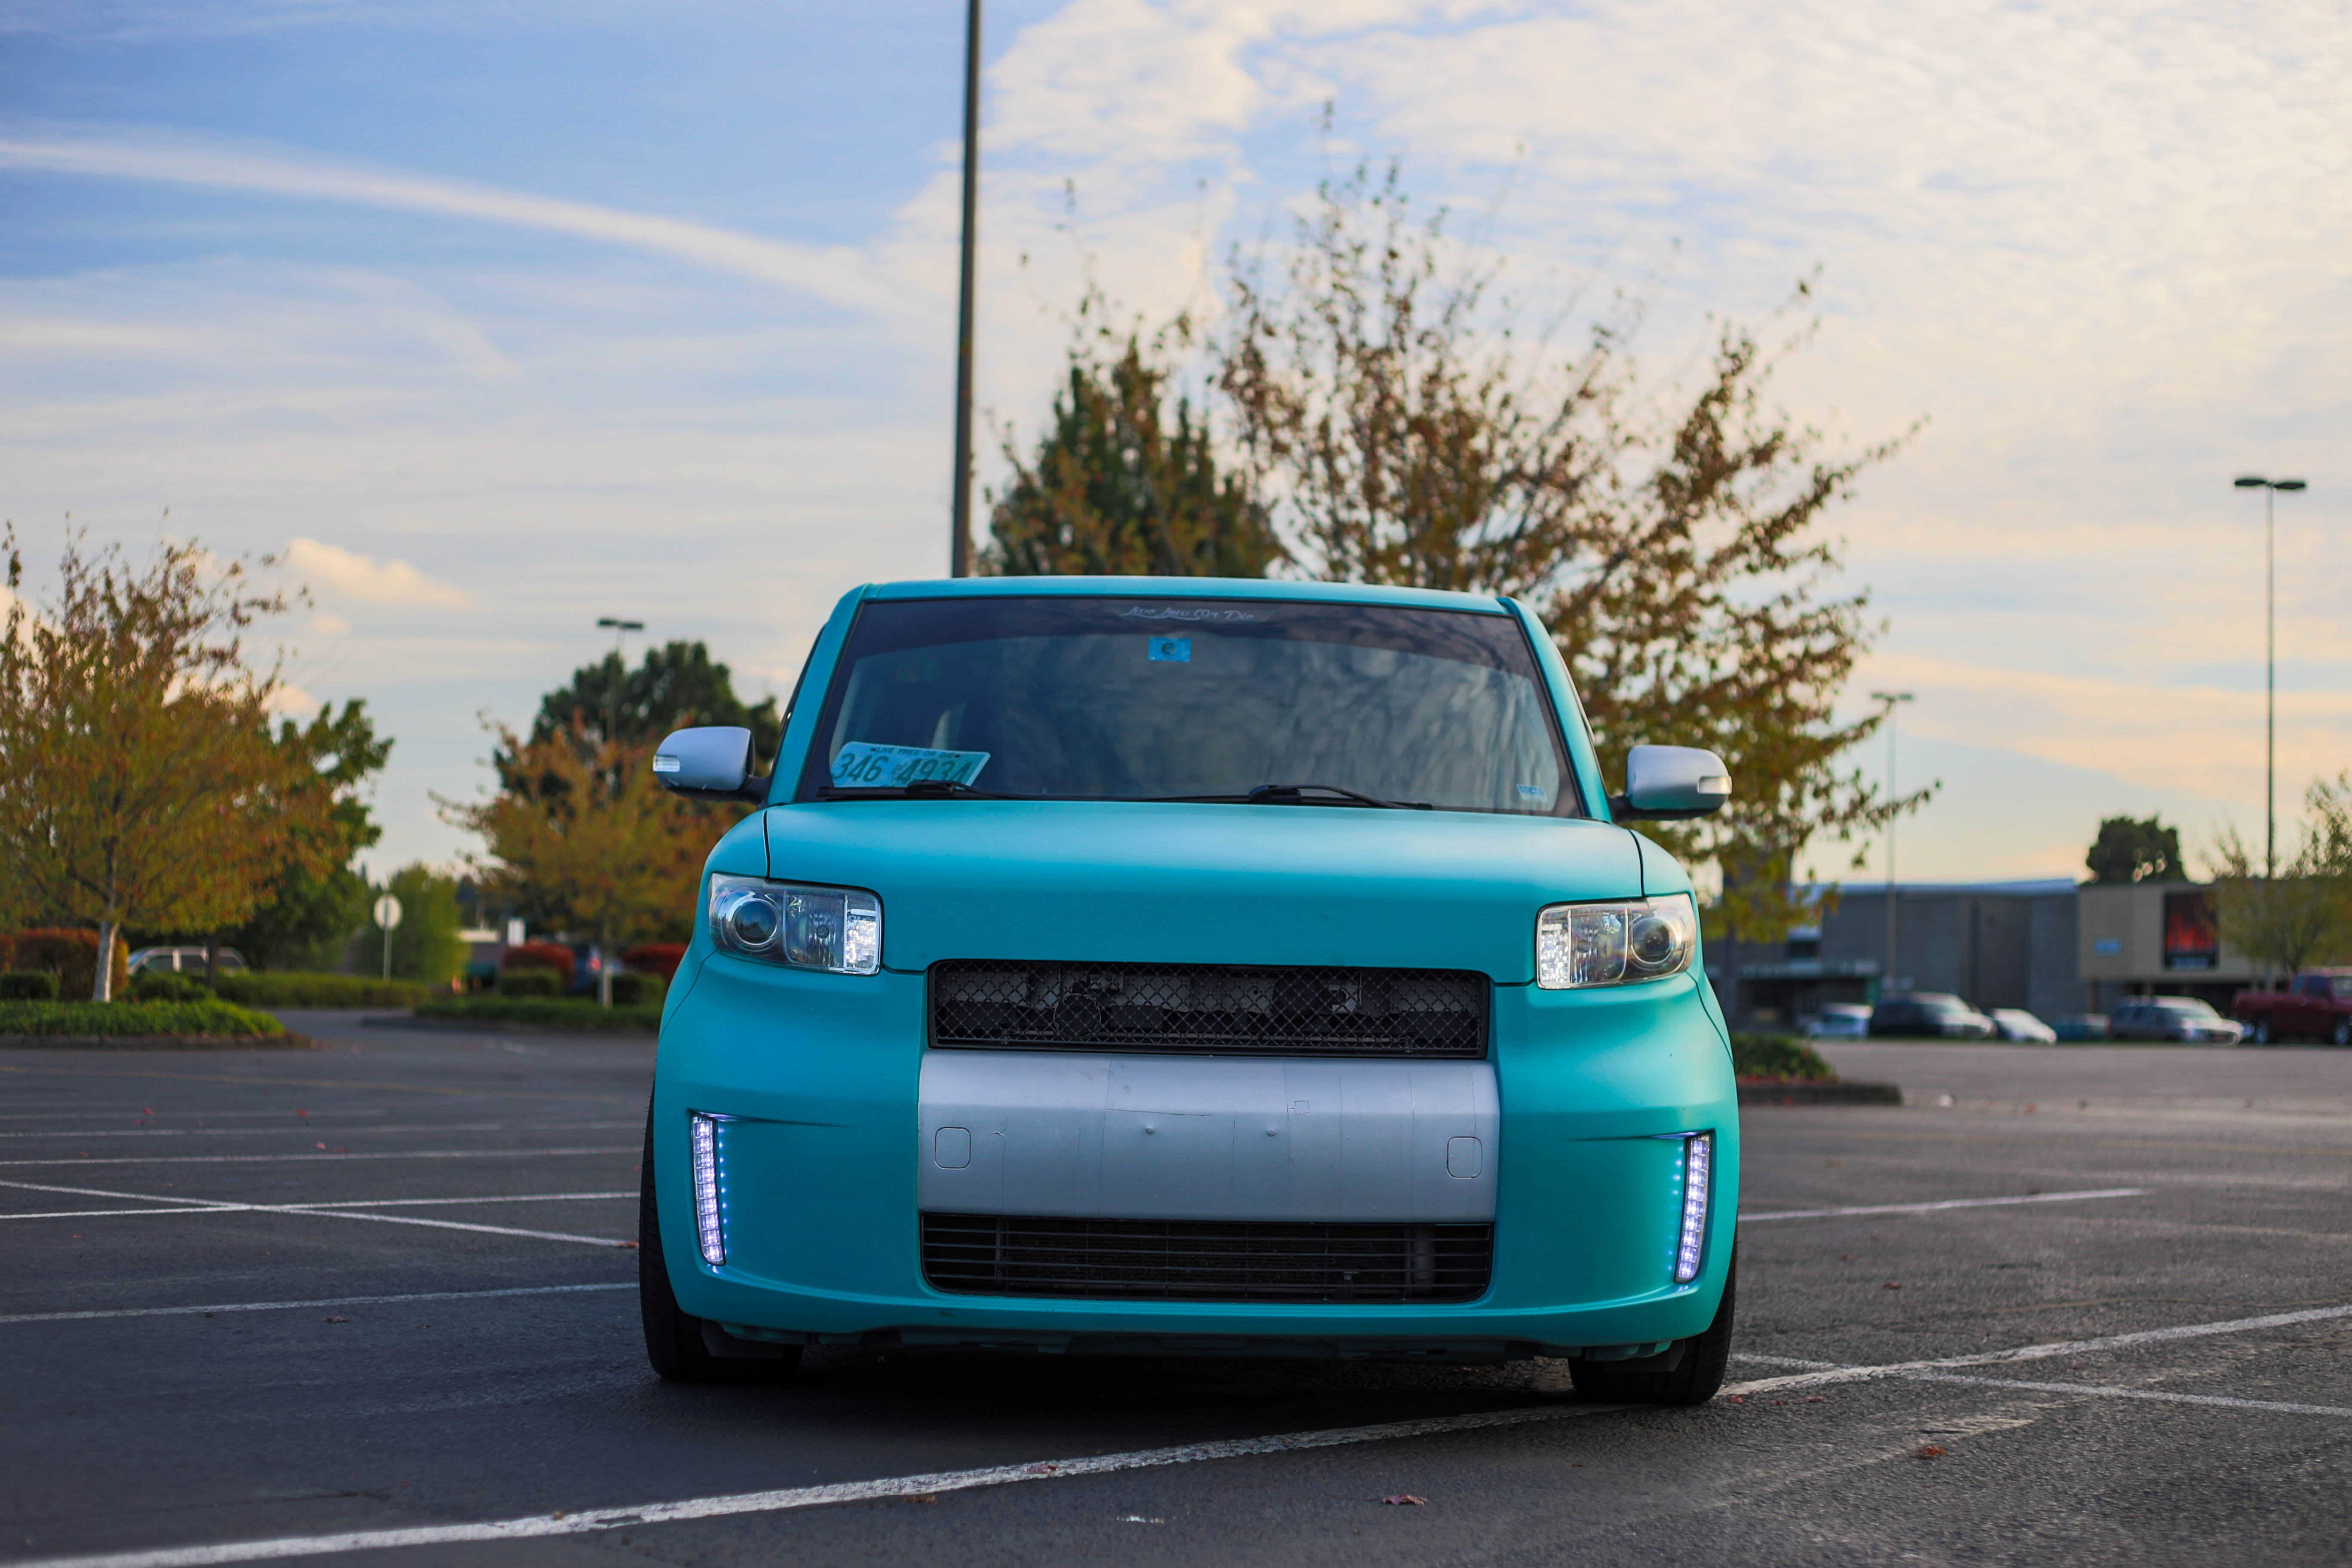 cgreer20 39 s 2008 scion xb in portland or. Black Bedroom Furniture Sets. Home Design Ideas